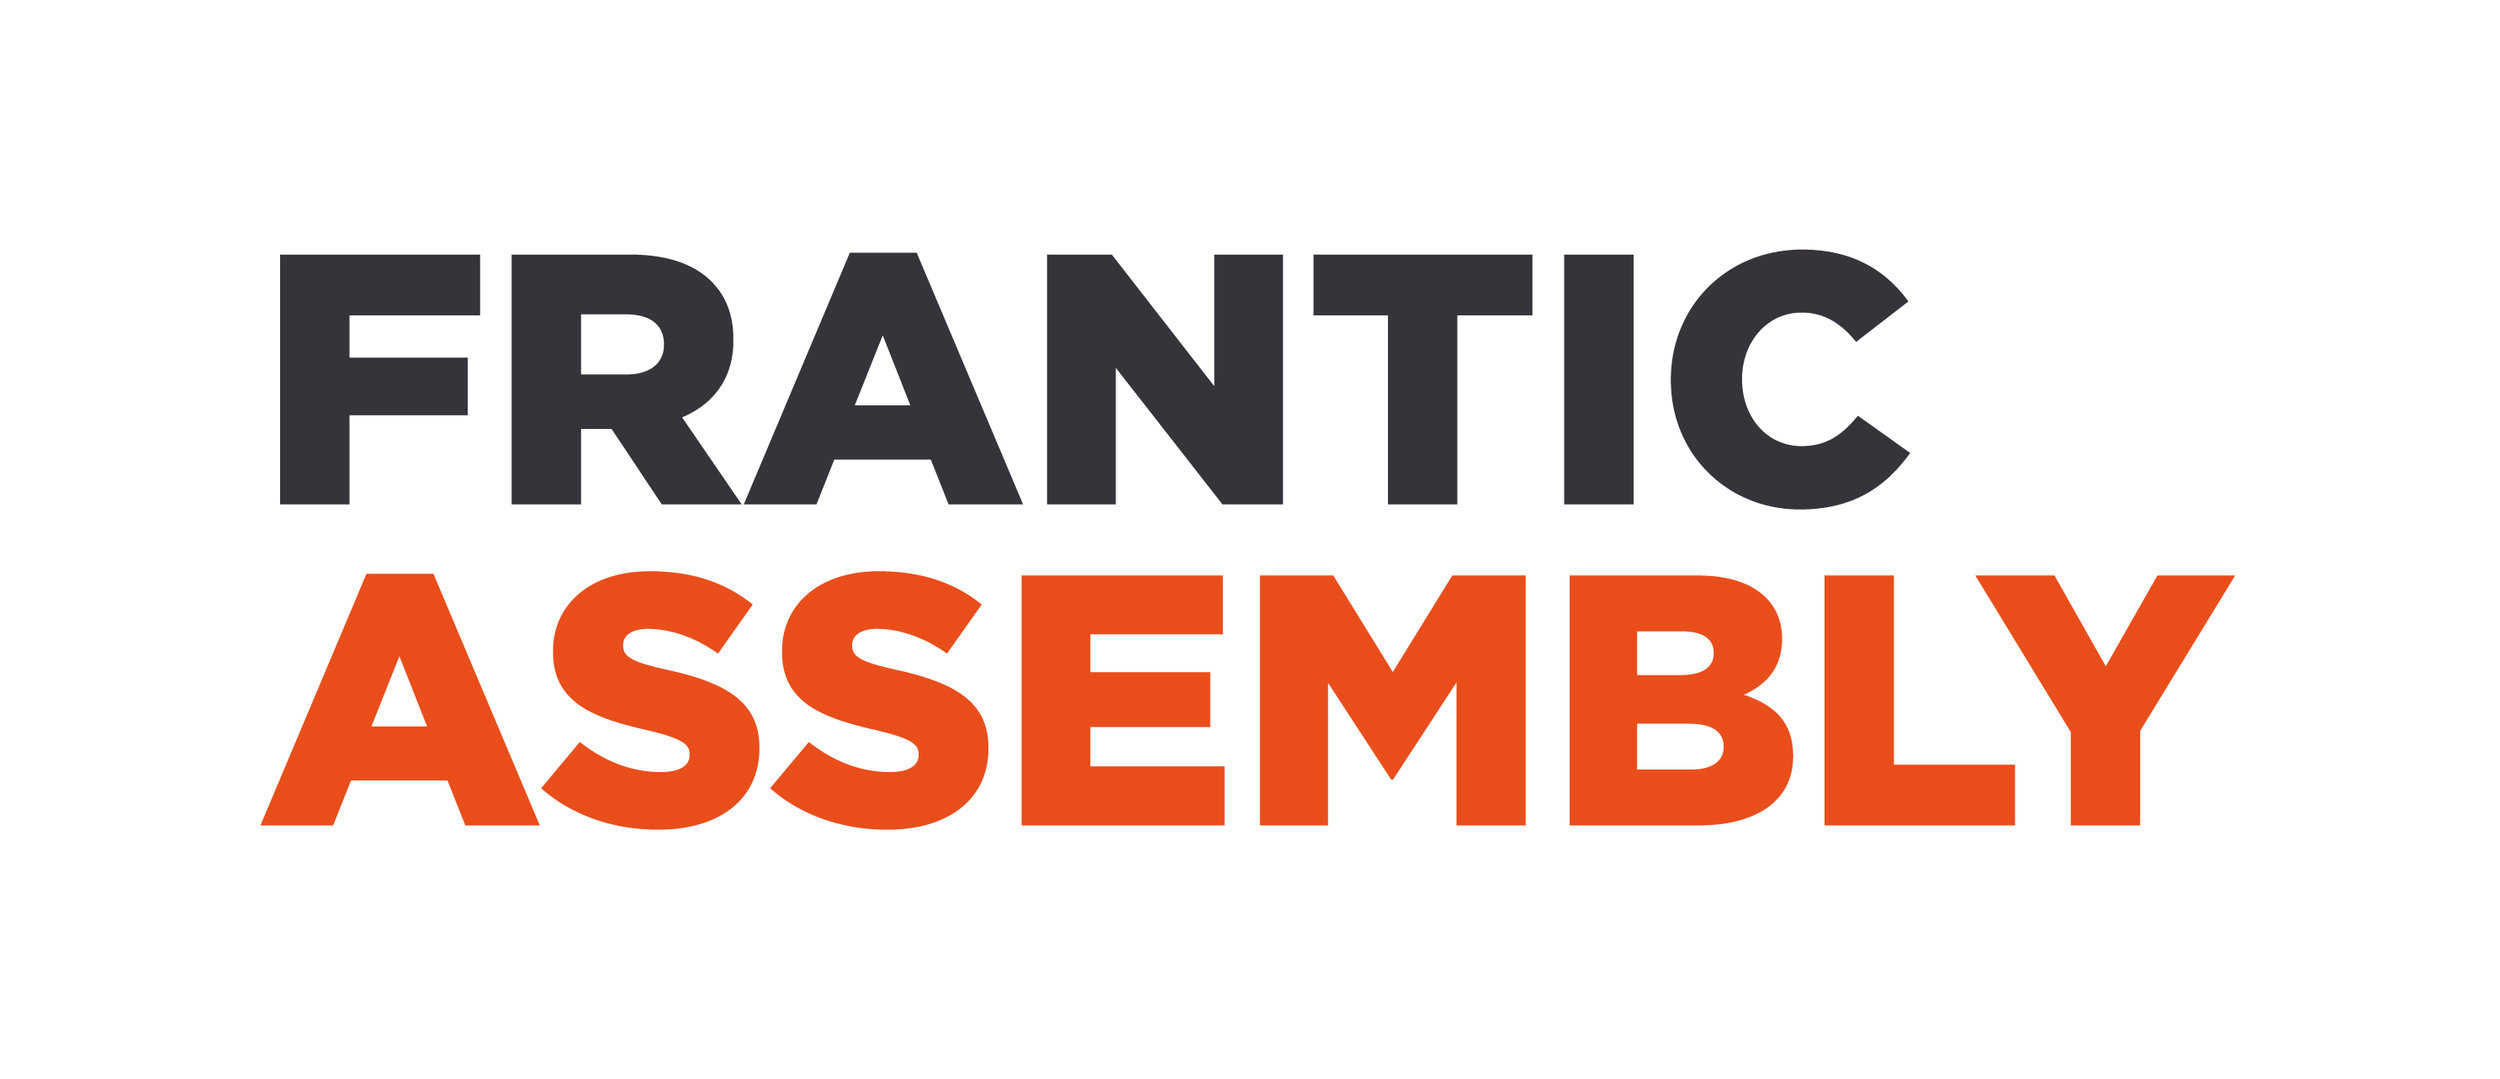 Frantic Assembly is an internationally renowned theatre company inspiring innovative practice and unlocking creative potential. The company have toured extensively, and worked in over 40 countries collaborating with some of today's most inspiring artists. Learn more at   www.franticassembly.co.uk